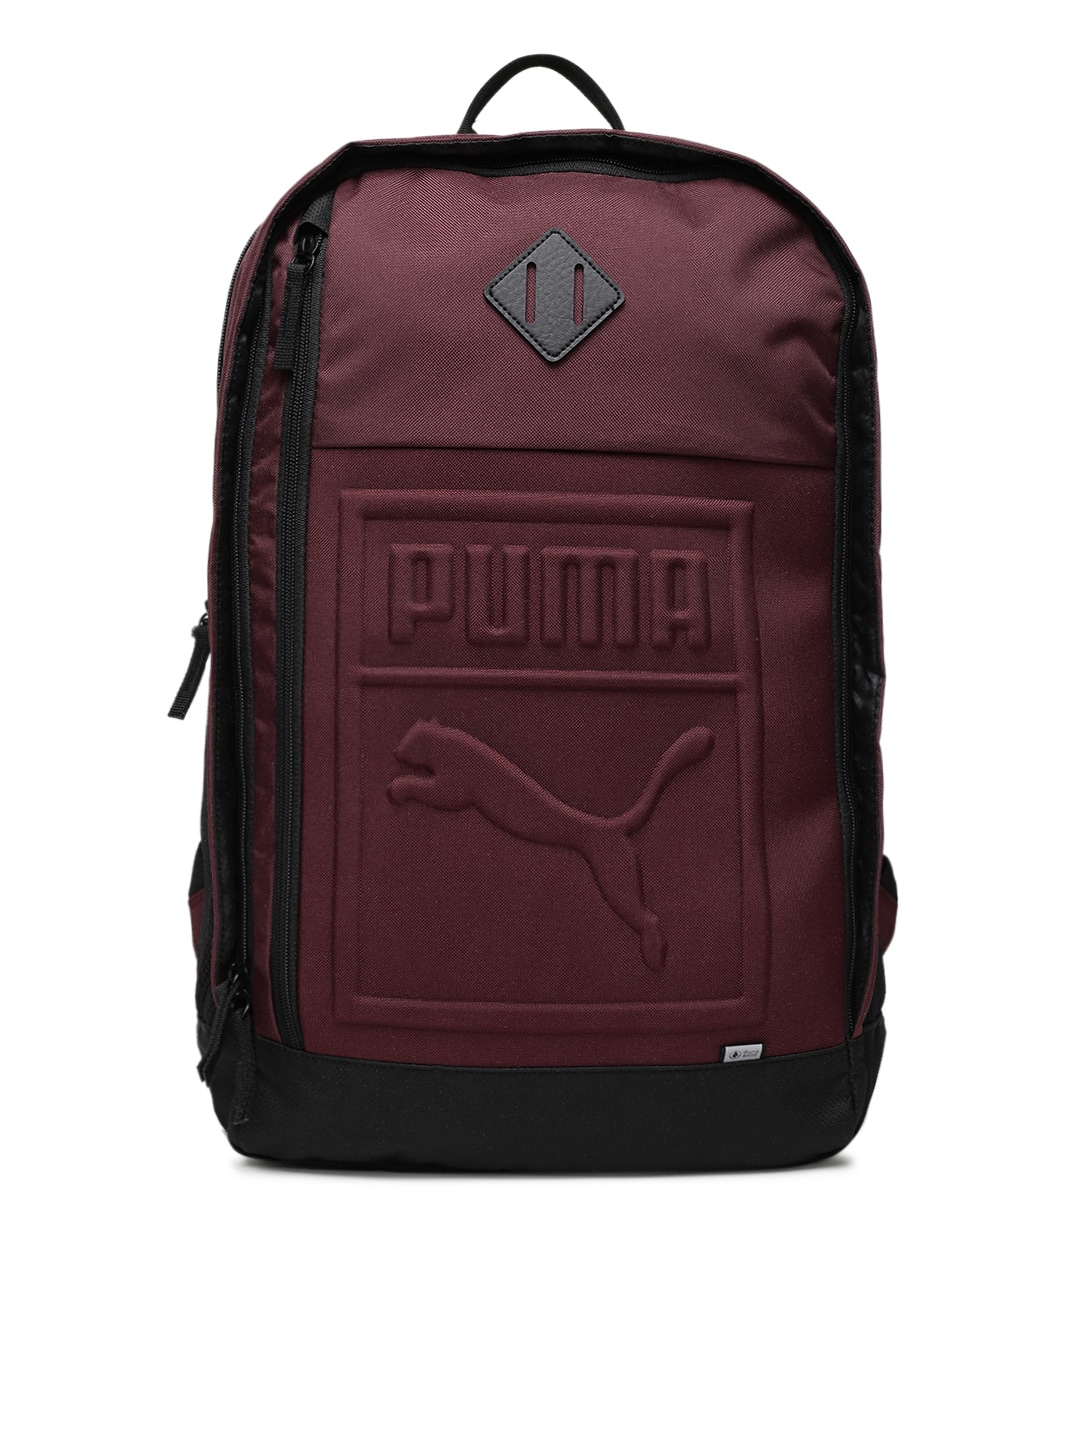 Puma Backpacks Caps Sports Shoes - Buy Puma Backpacks Caps Sports Shoes  online in India a68eb67d990e0